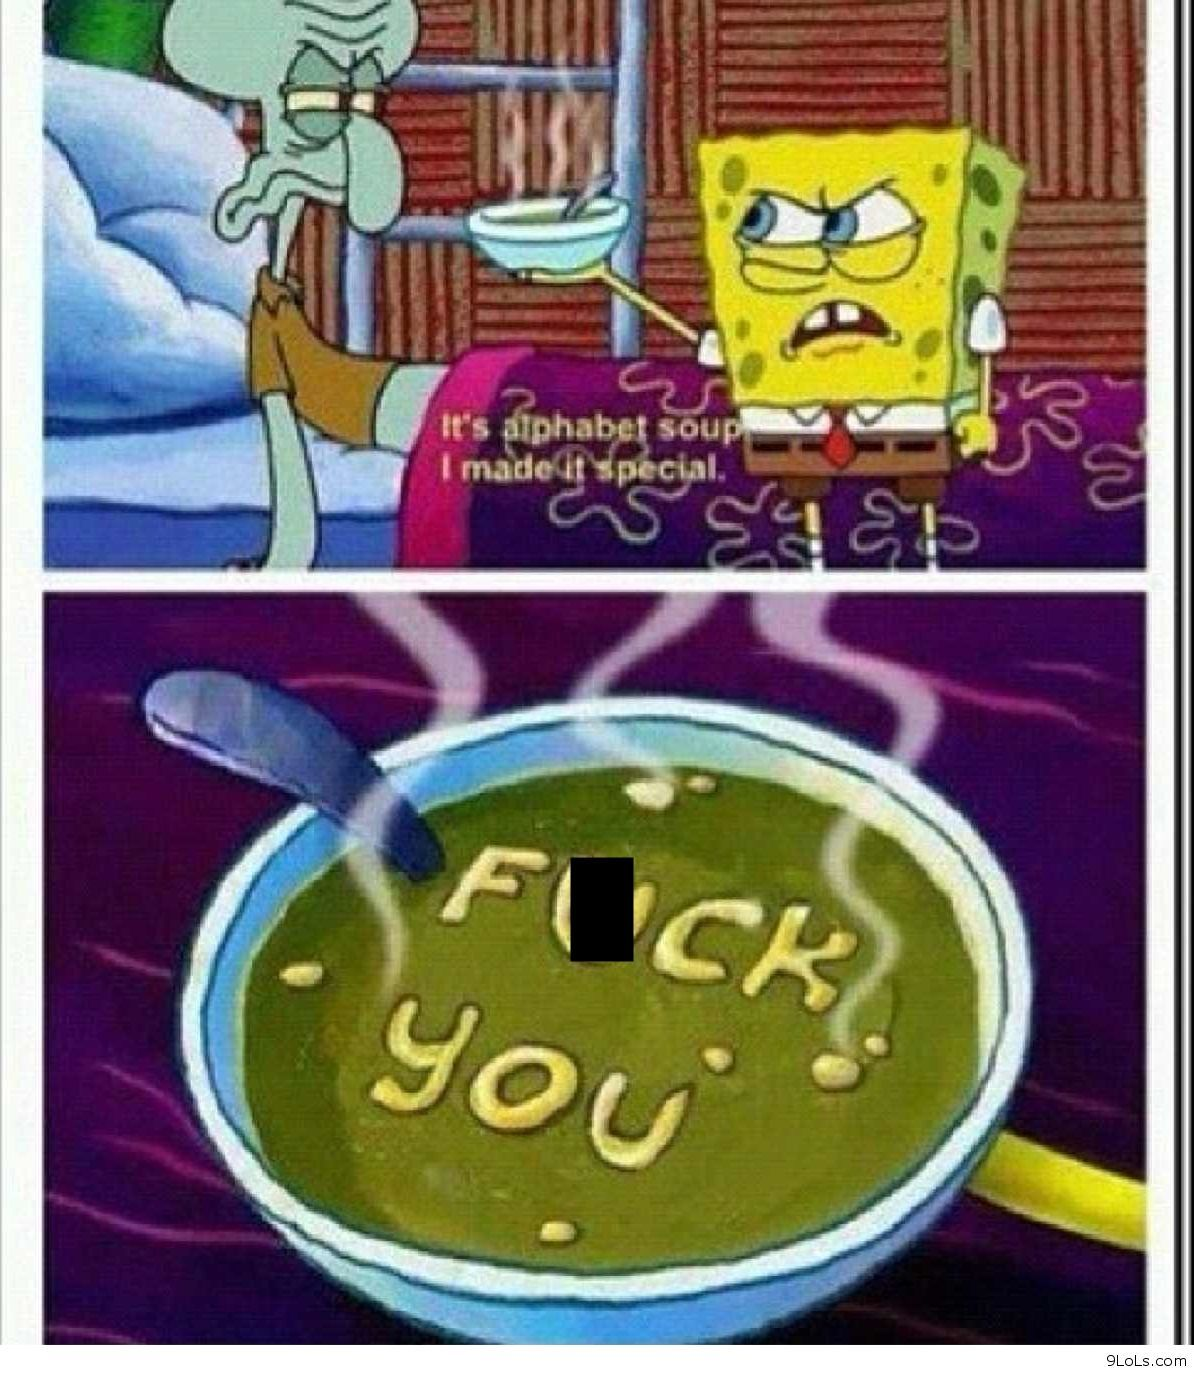 Funny Quotes Of Spongebob Funny Spongebob Pictures With Captions For Kids Viewing Gallery Jpg 1194 137 Spongebob Funny Funny Spongebob Memes Spongebob Memes